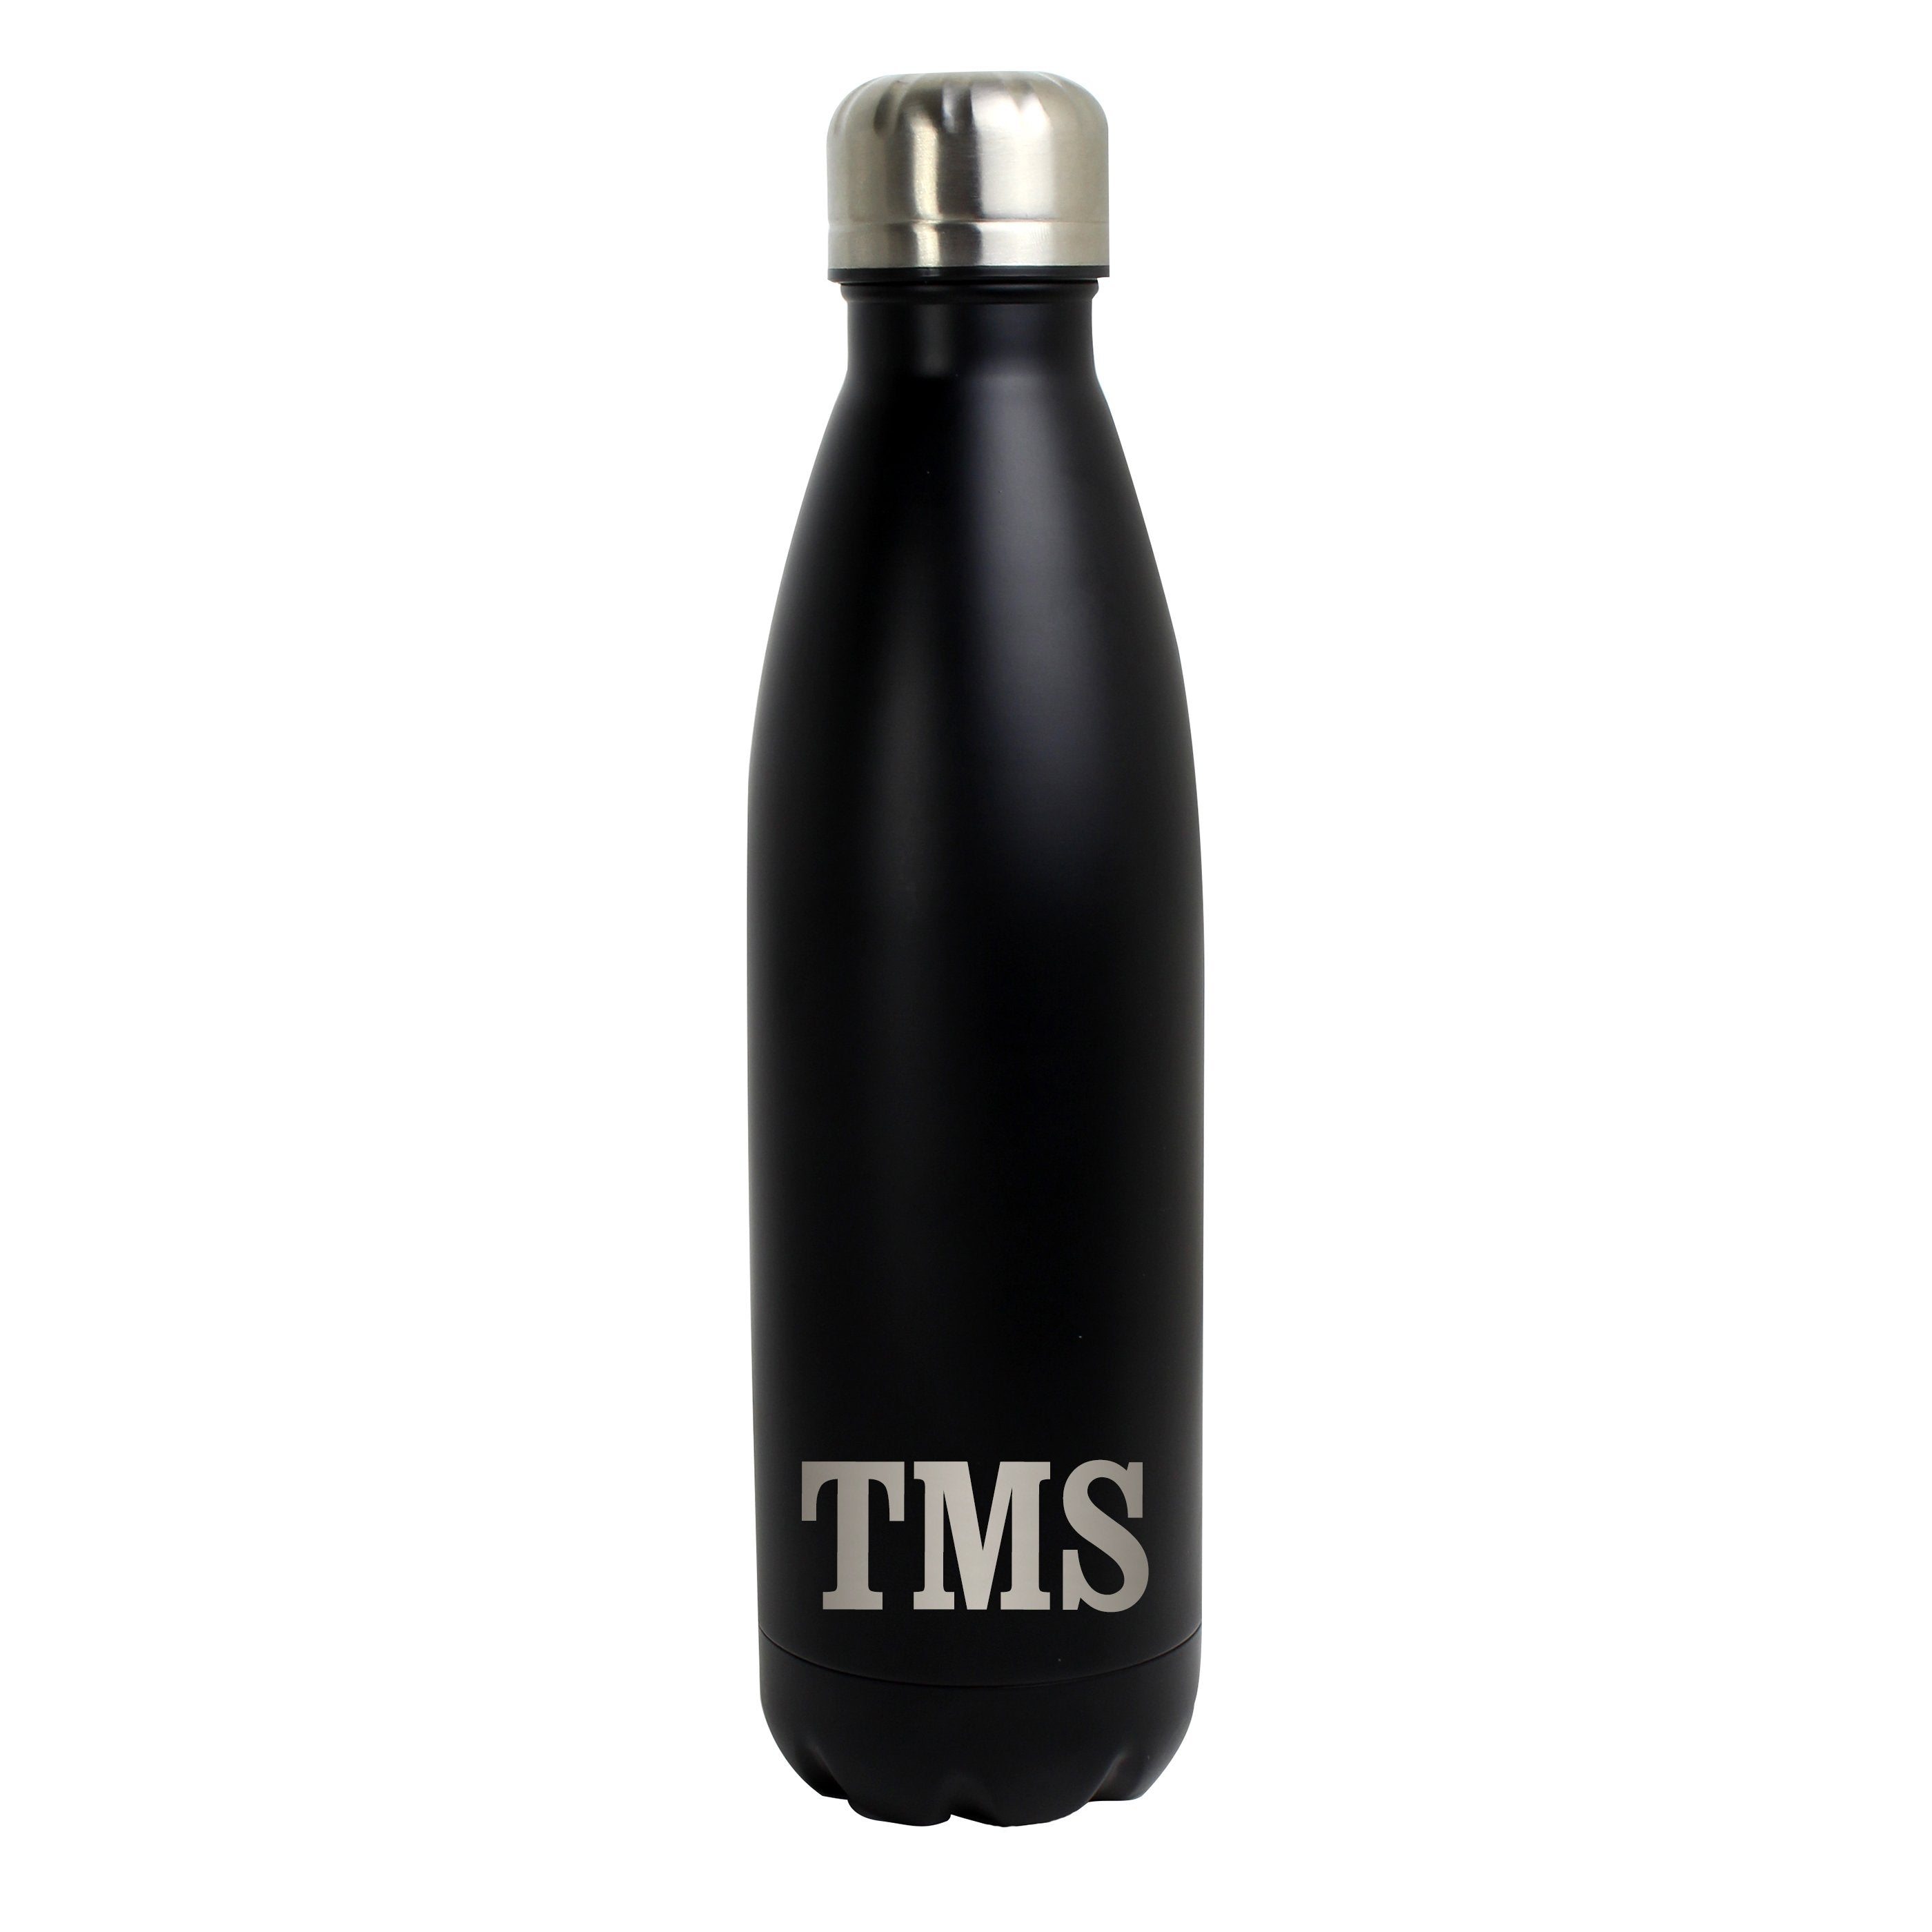 Personalised Initials Black Metal Insulated Drinks Bottle - Shop Personalised Gifts